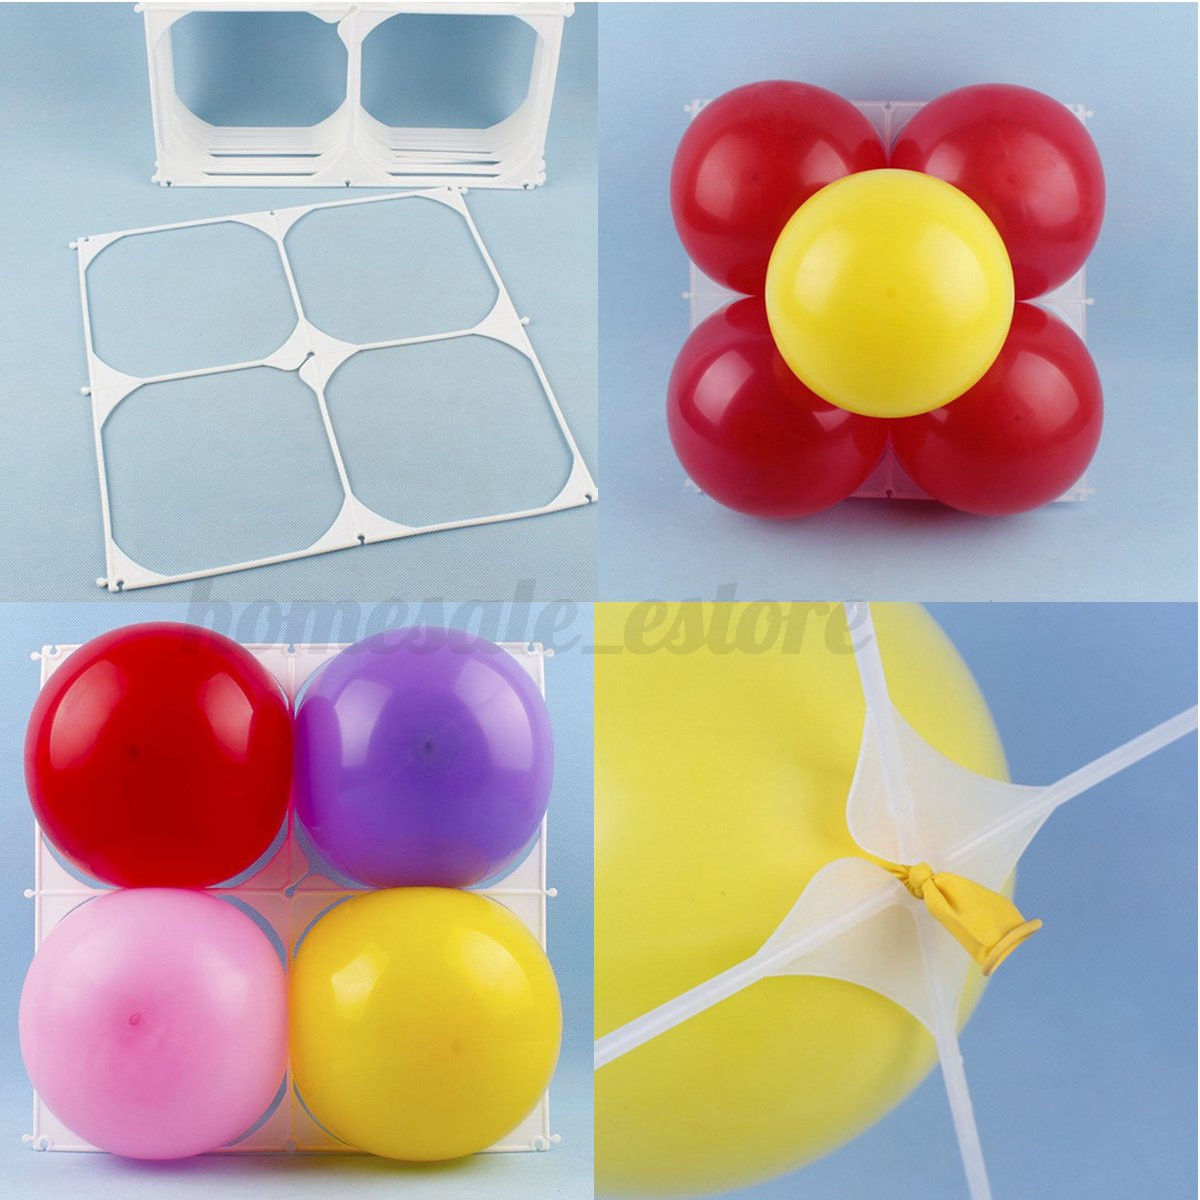 Magnificent Balloon Grid For Balloon Wall Decoration Images - The ...